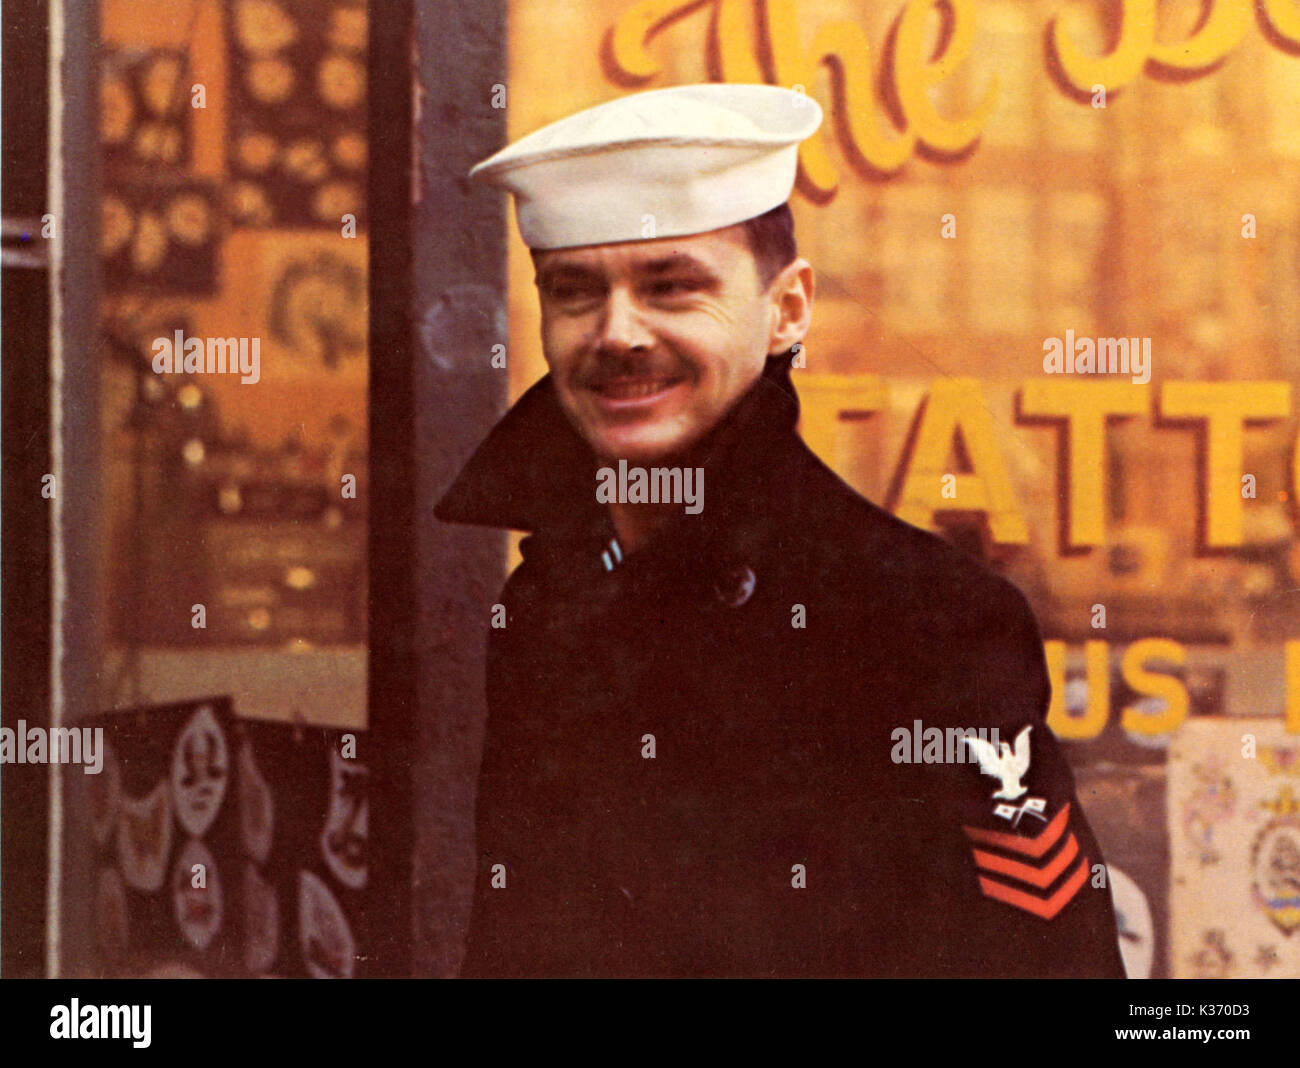 THE LAST DETAIL COLUMBIA PICTURES JACK NICHOLSON     Date: 1973 - Stock Image